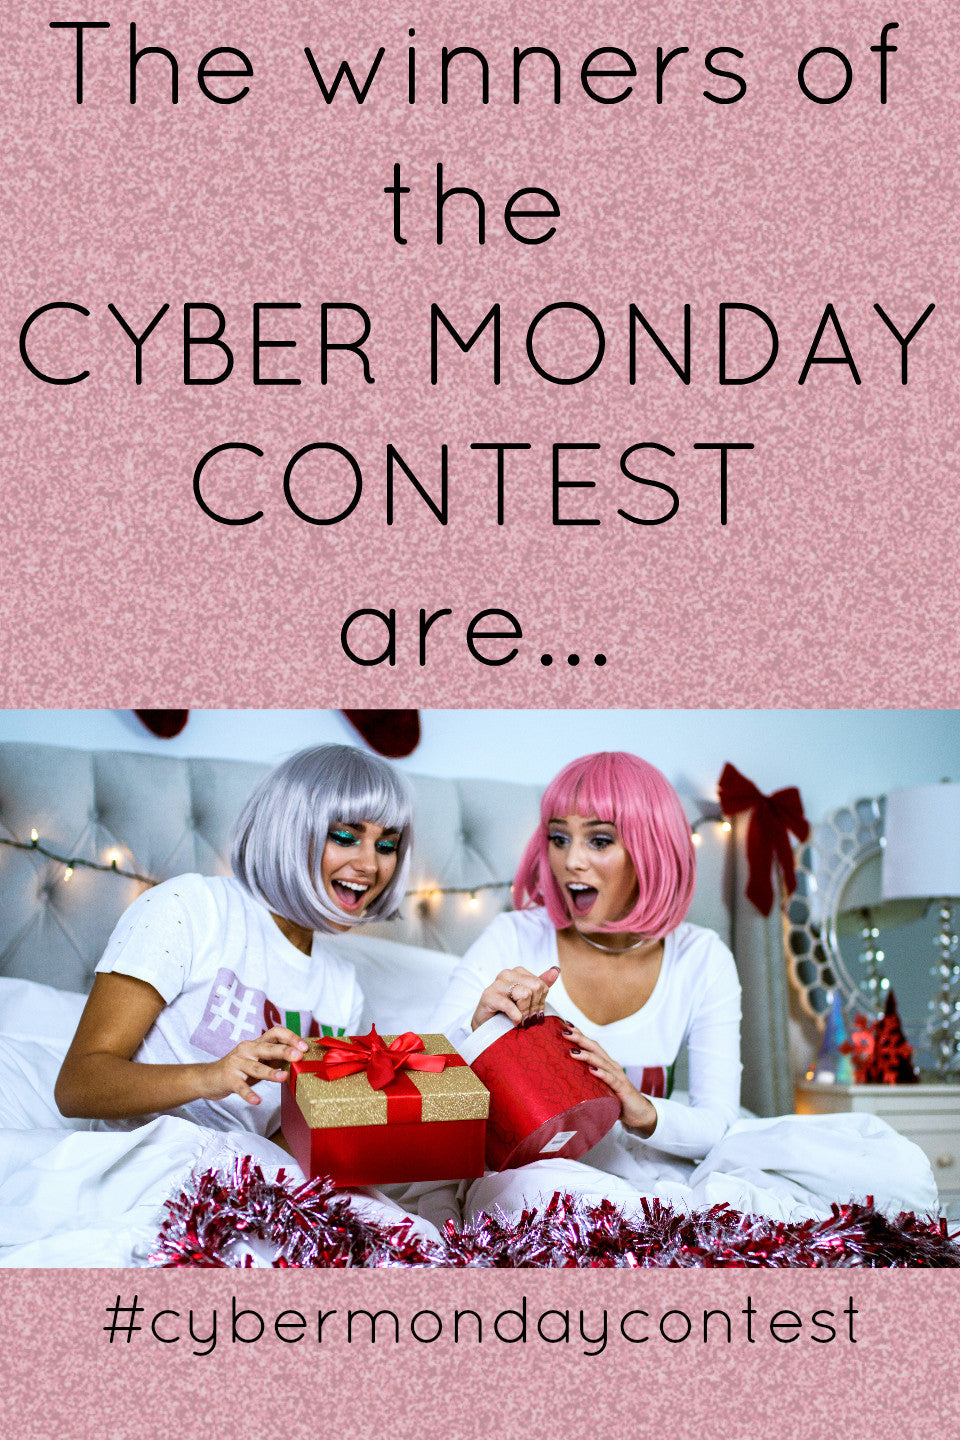 $500 Cyber Monday Contest Winners!!!